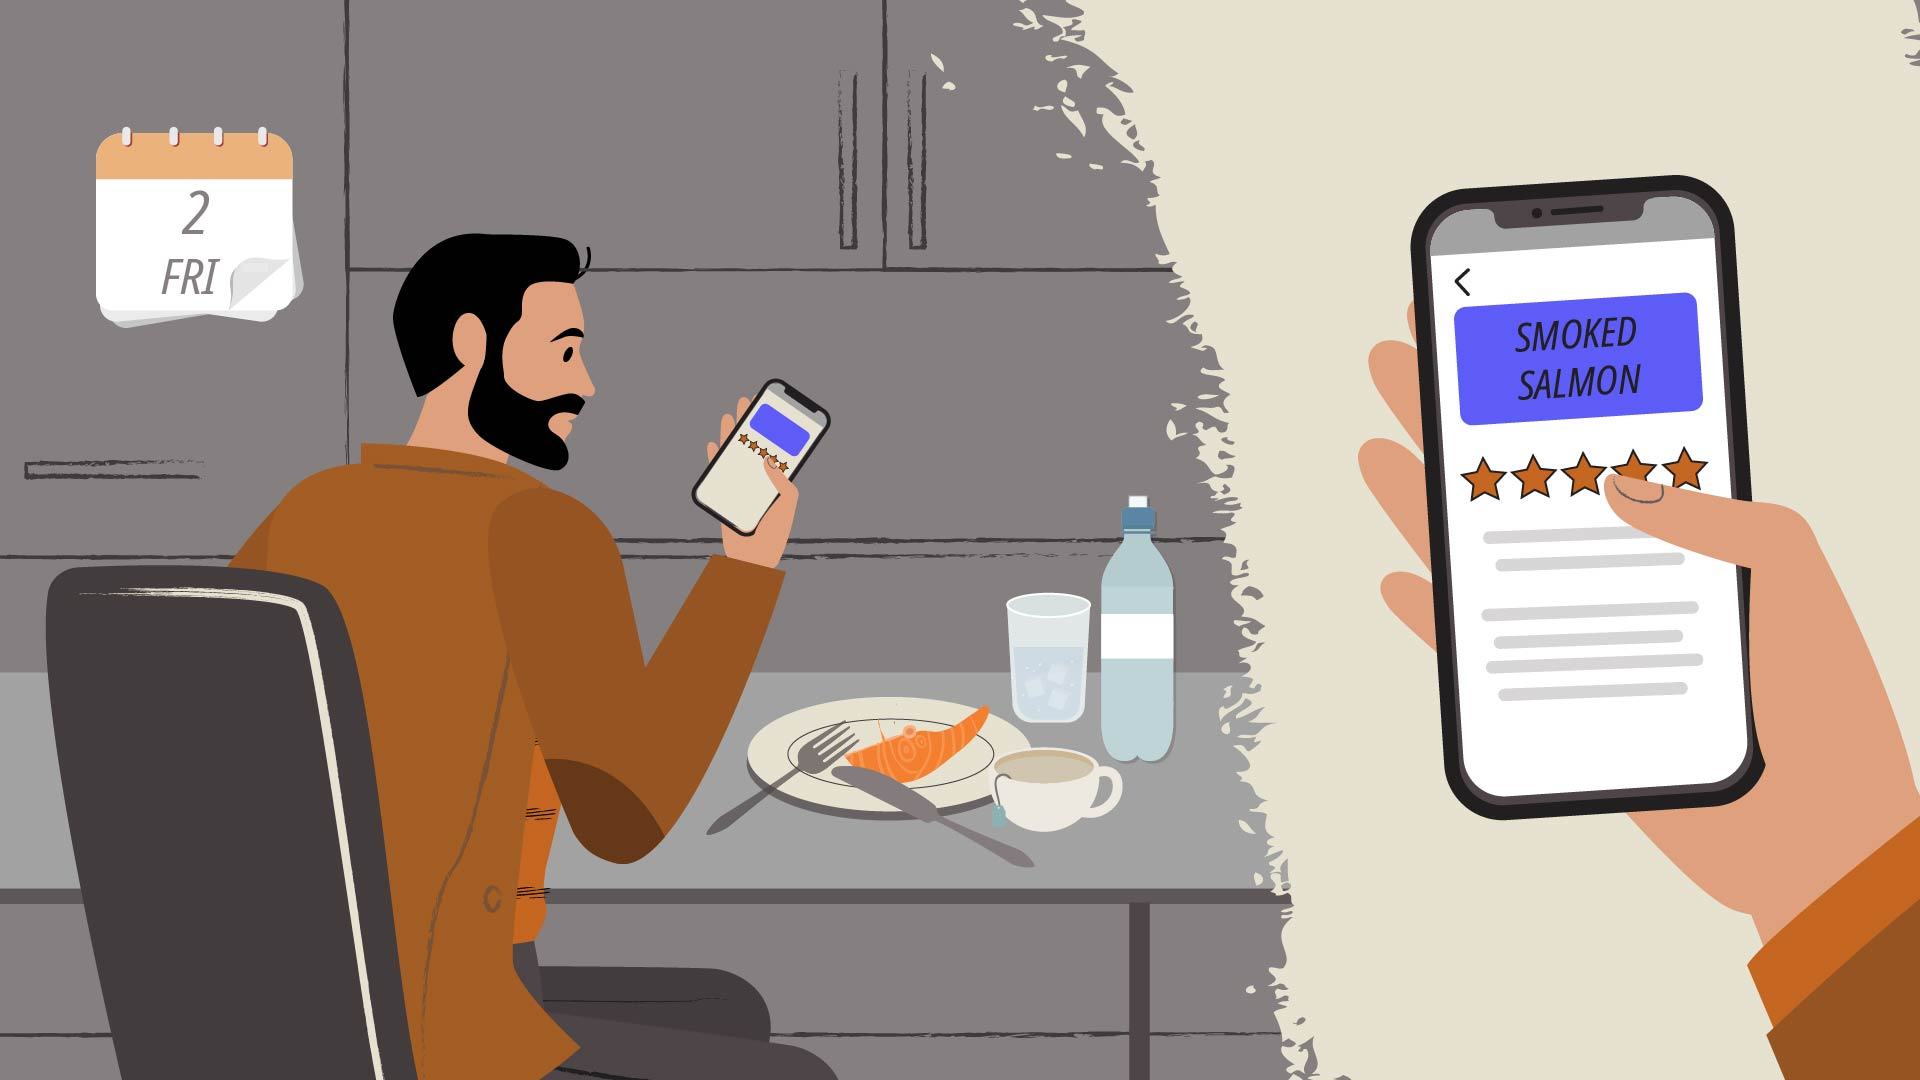 How to order food? - Video about the app